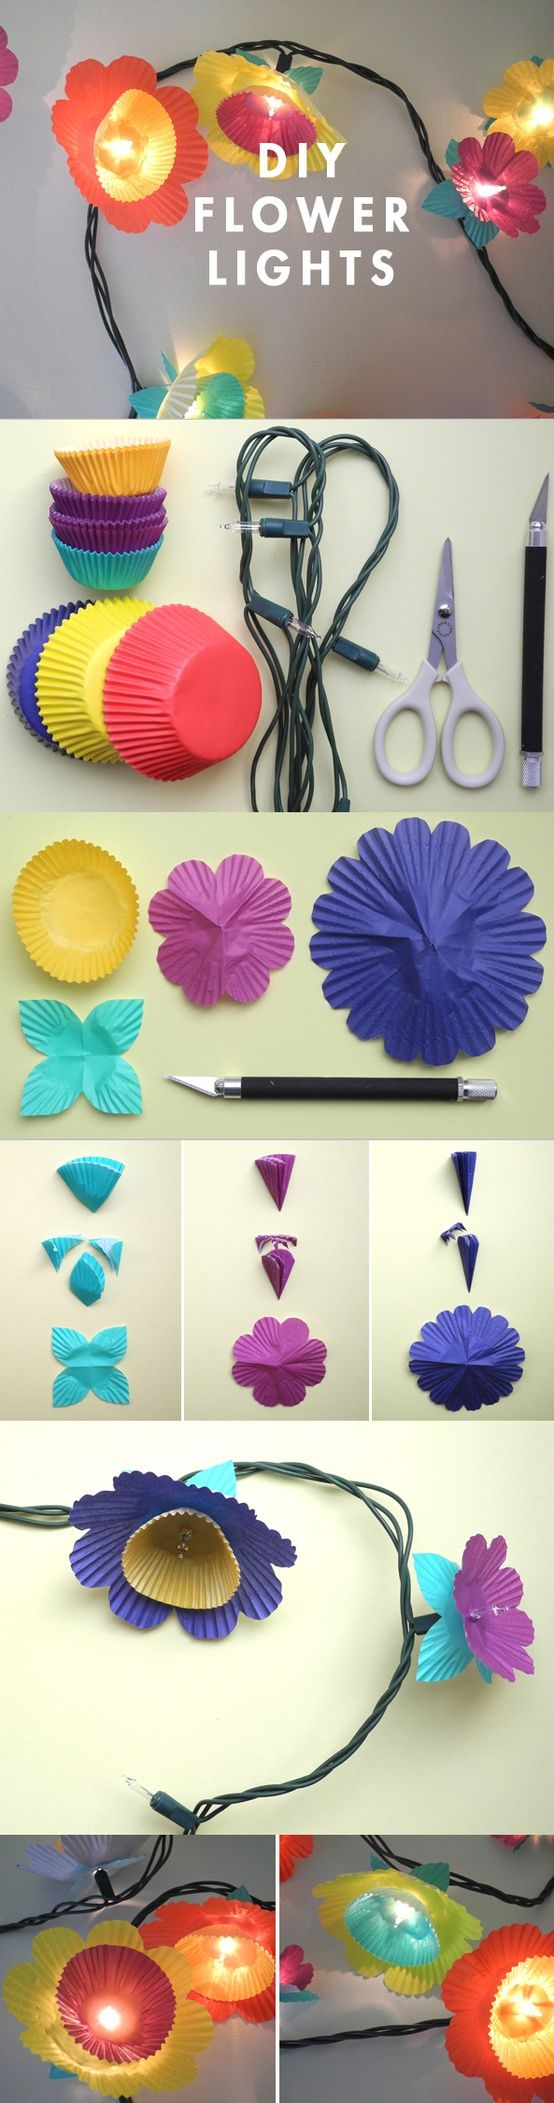 Not sure about the lights, but the flowers from cupcake liners would be a fun…